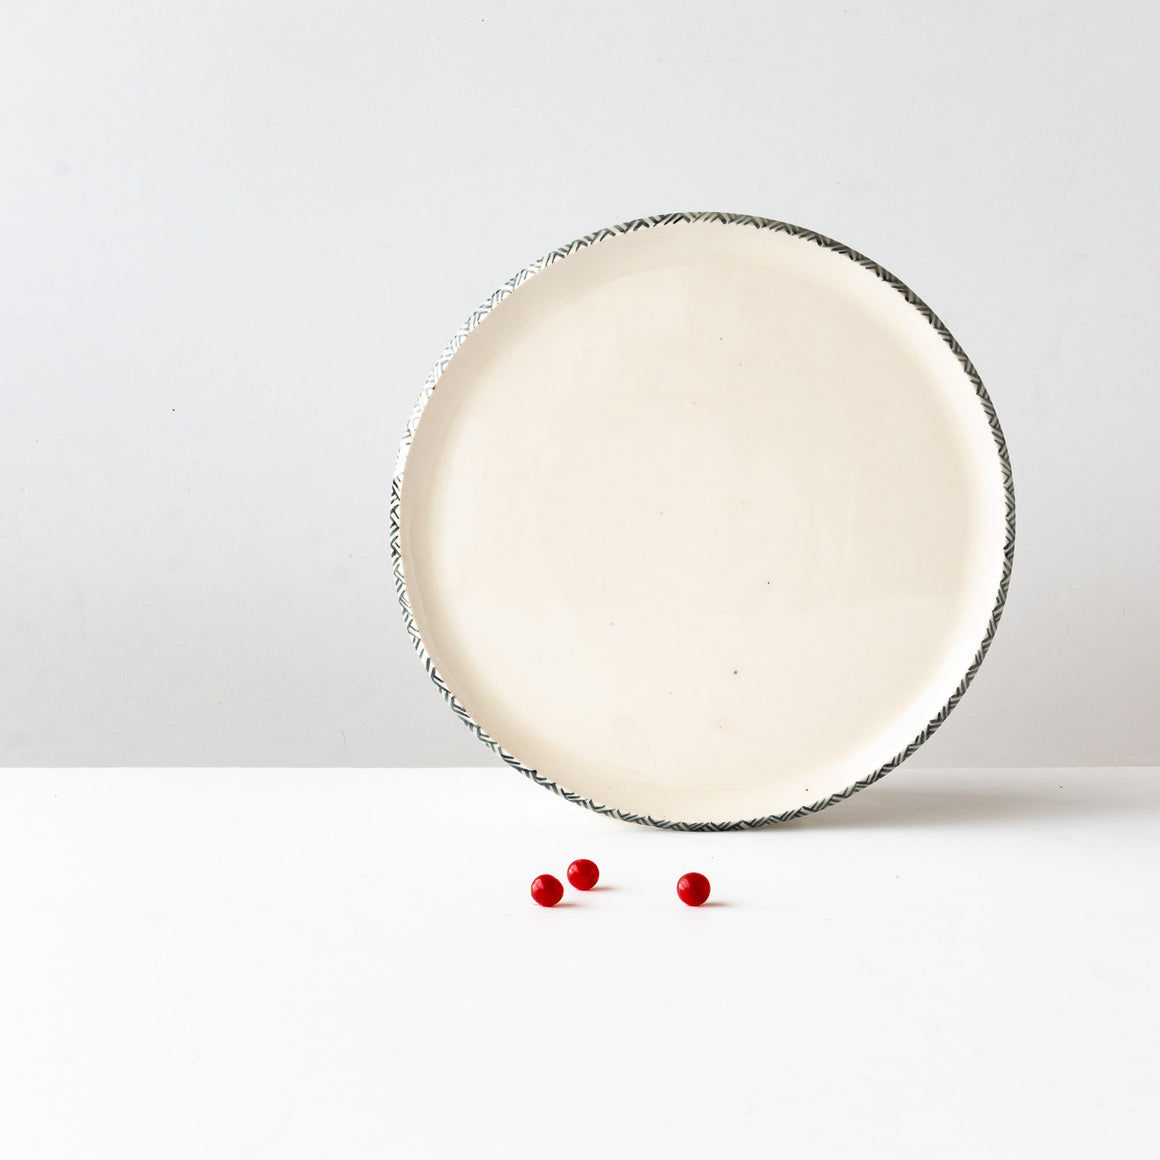 Three Handmade Porcelain Plates With Rim Adorned With a Painted Frieze - Sold by Chic & Basta